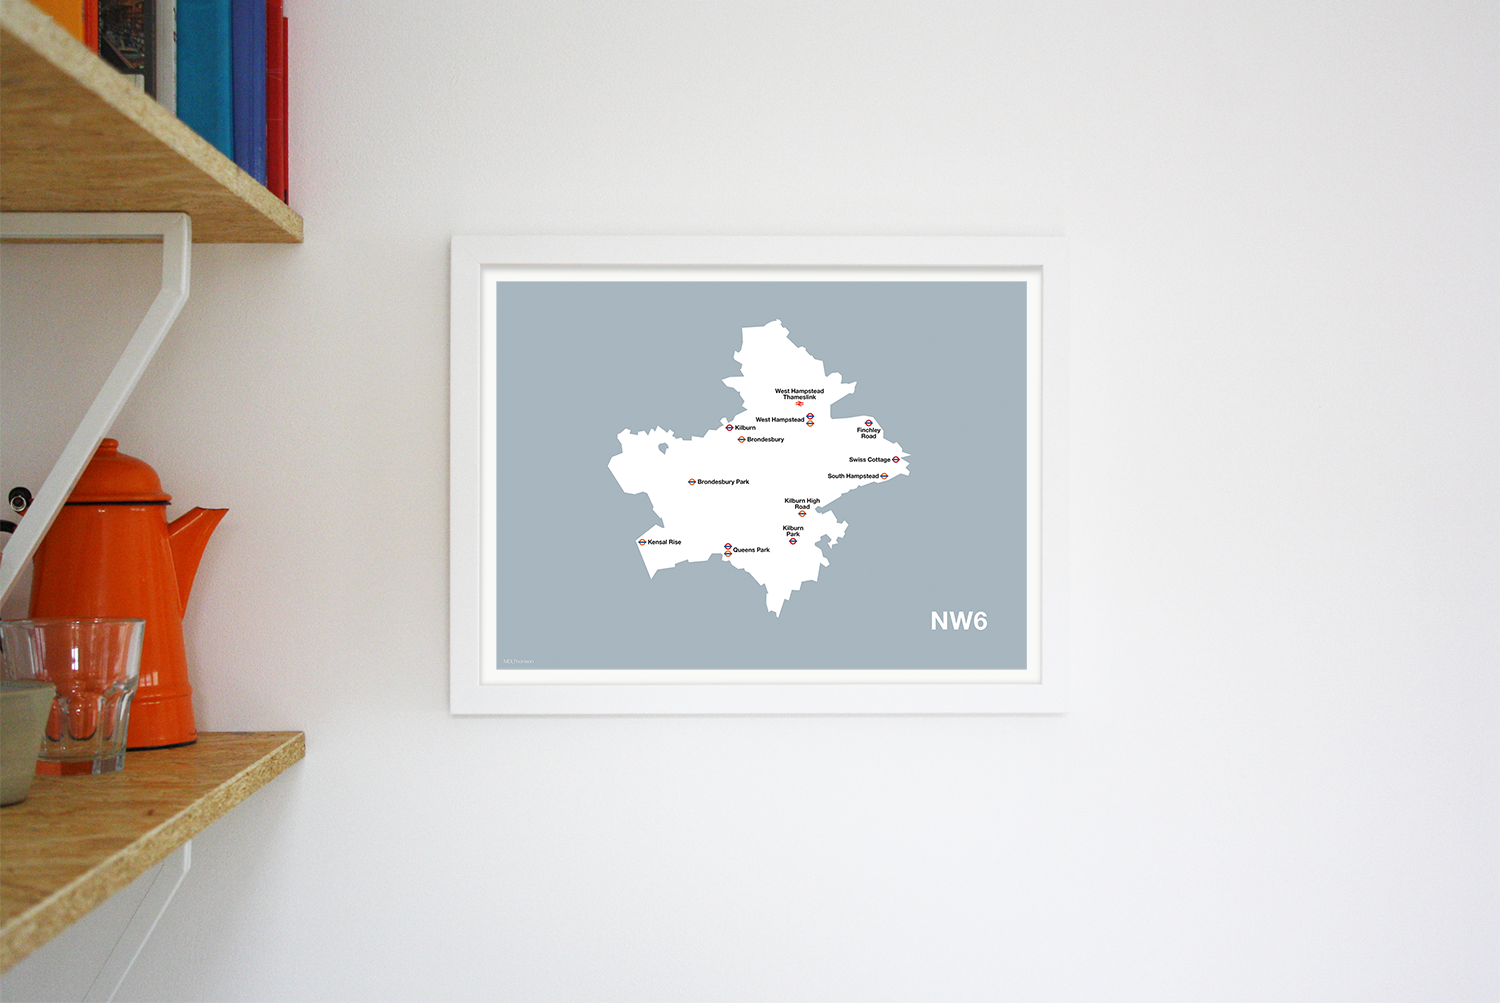 Place in Print MDLThomson NW6 Postcode Map Art Print Lifestyle